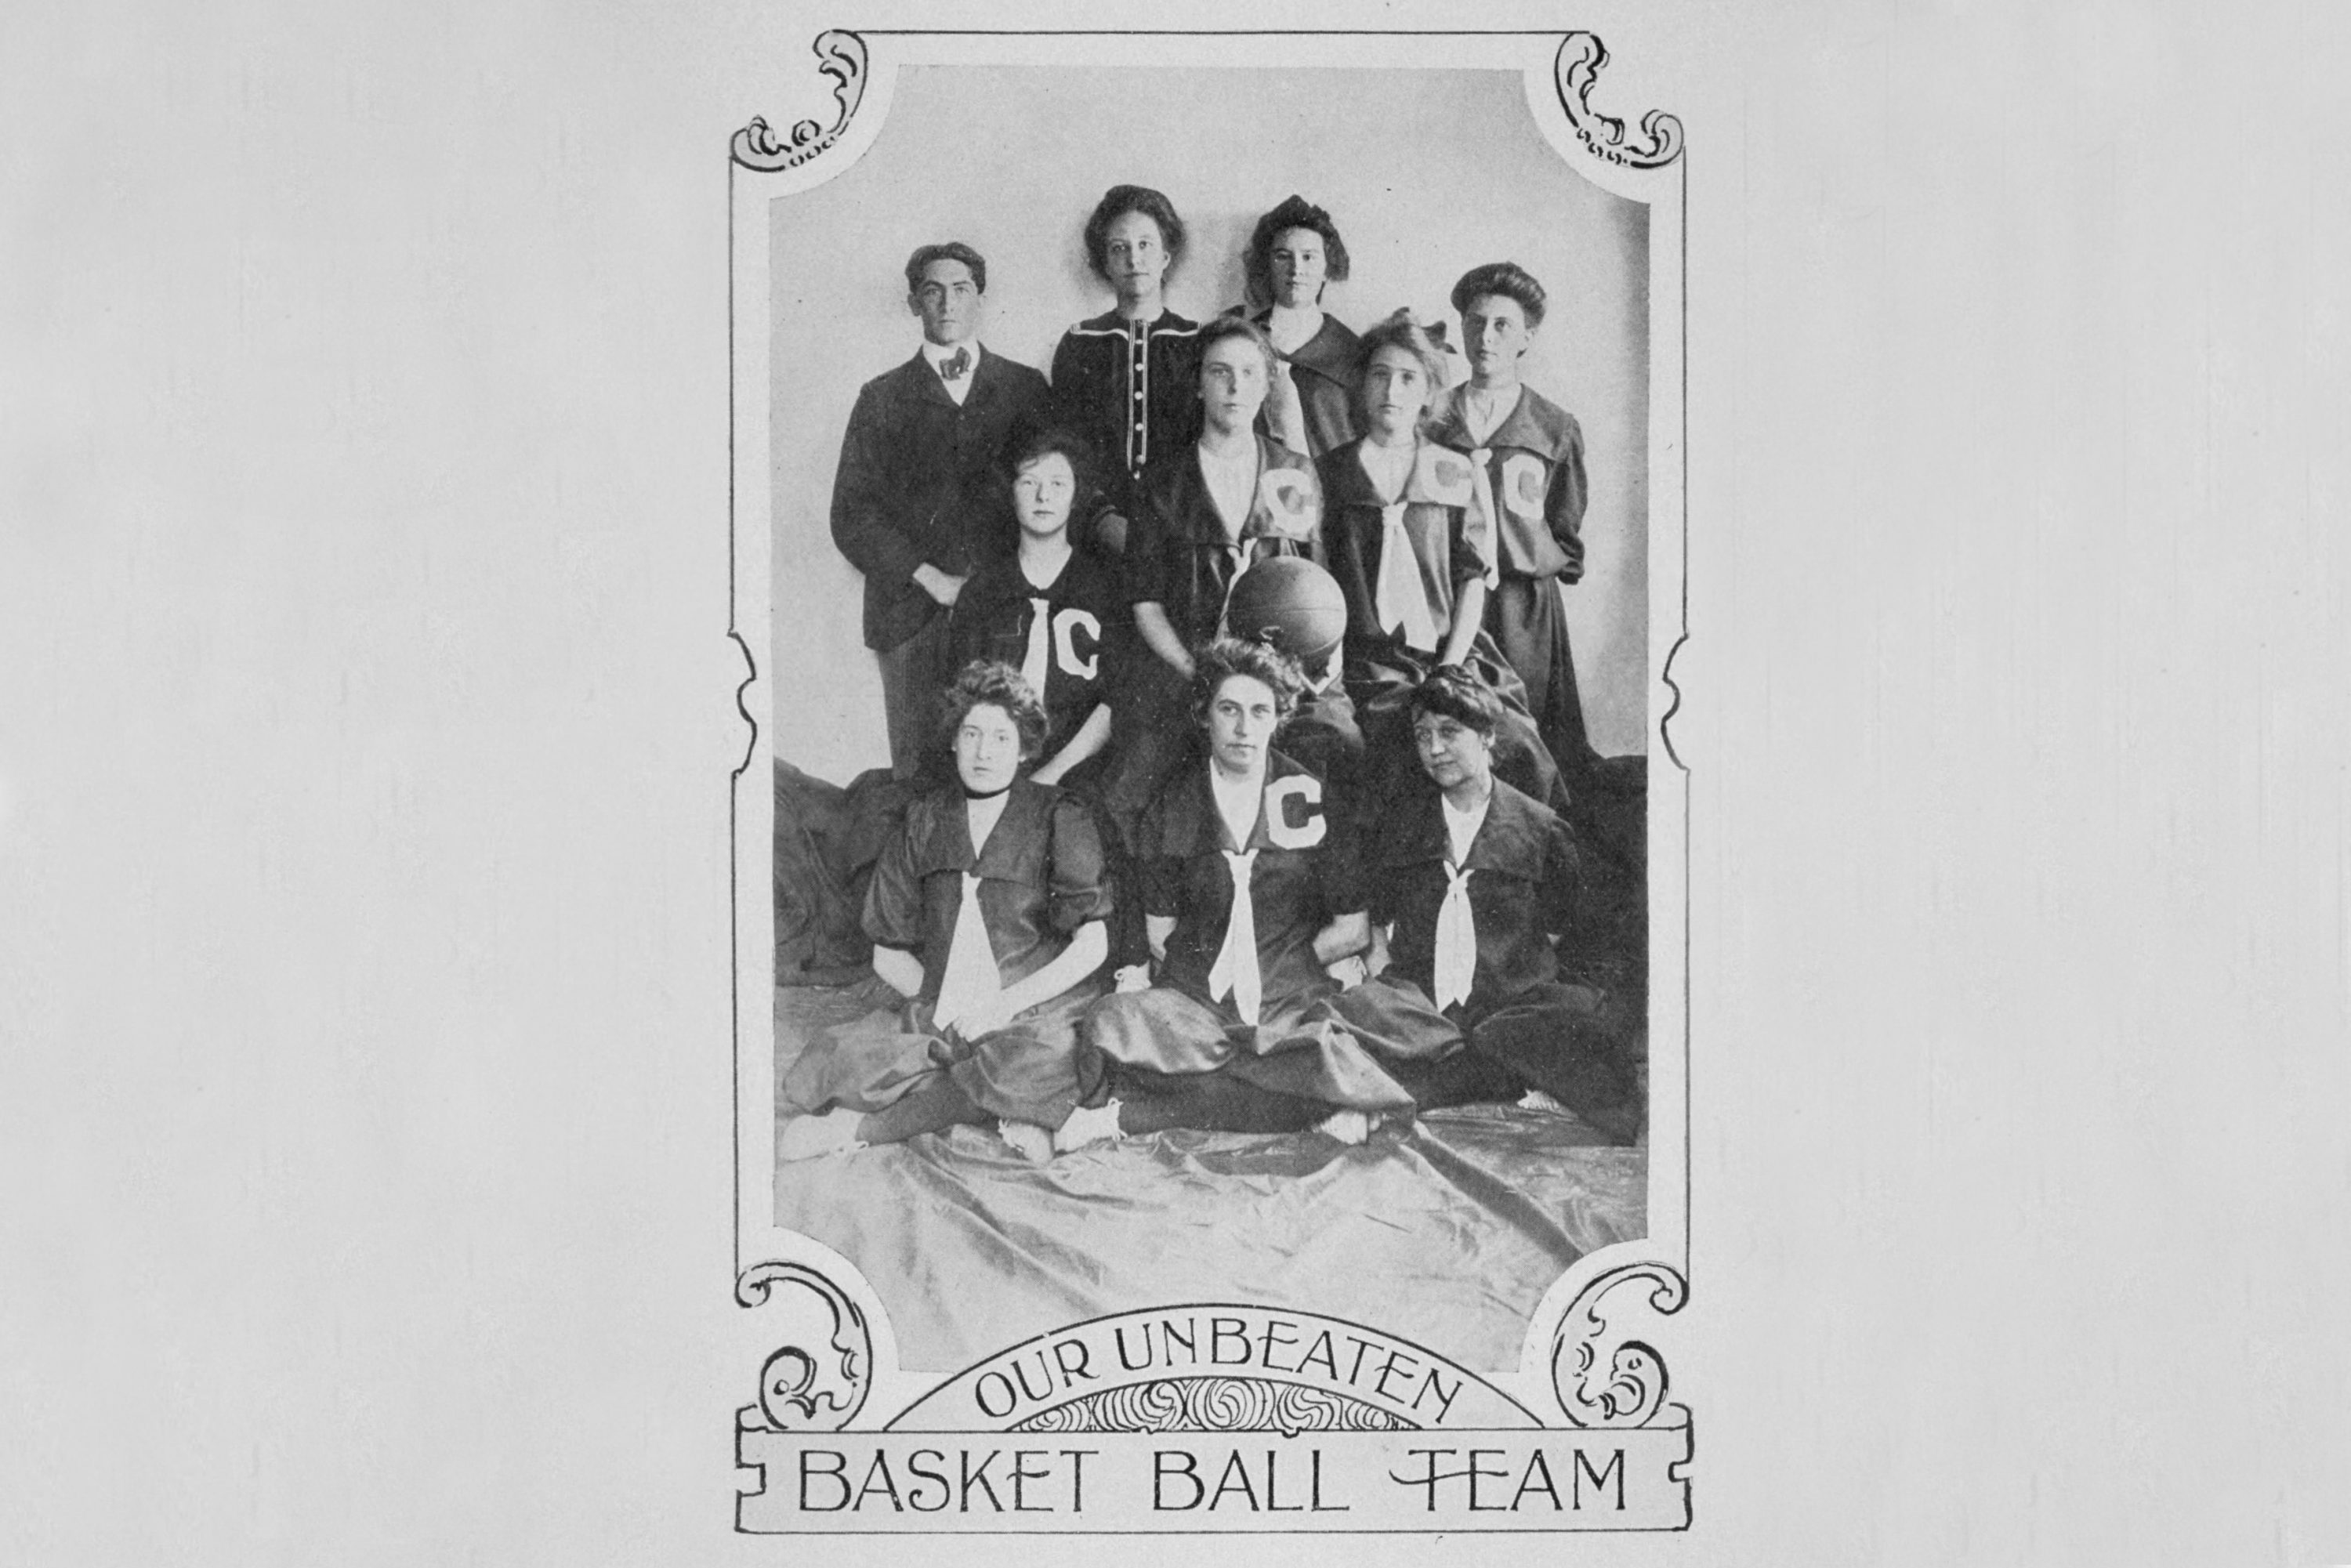 As we celebrate our women's basketball team equaling their previous unbeaten record of 90 games, we look back to the very earliest days of women's basketball in Storrs, when the team boasted an unbeaten season as far back as 1902. (Archives & Special Collections, University Library)